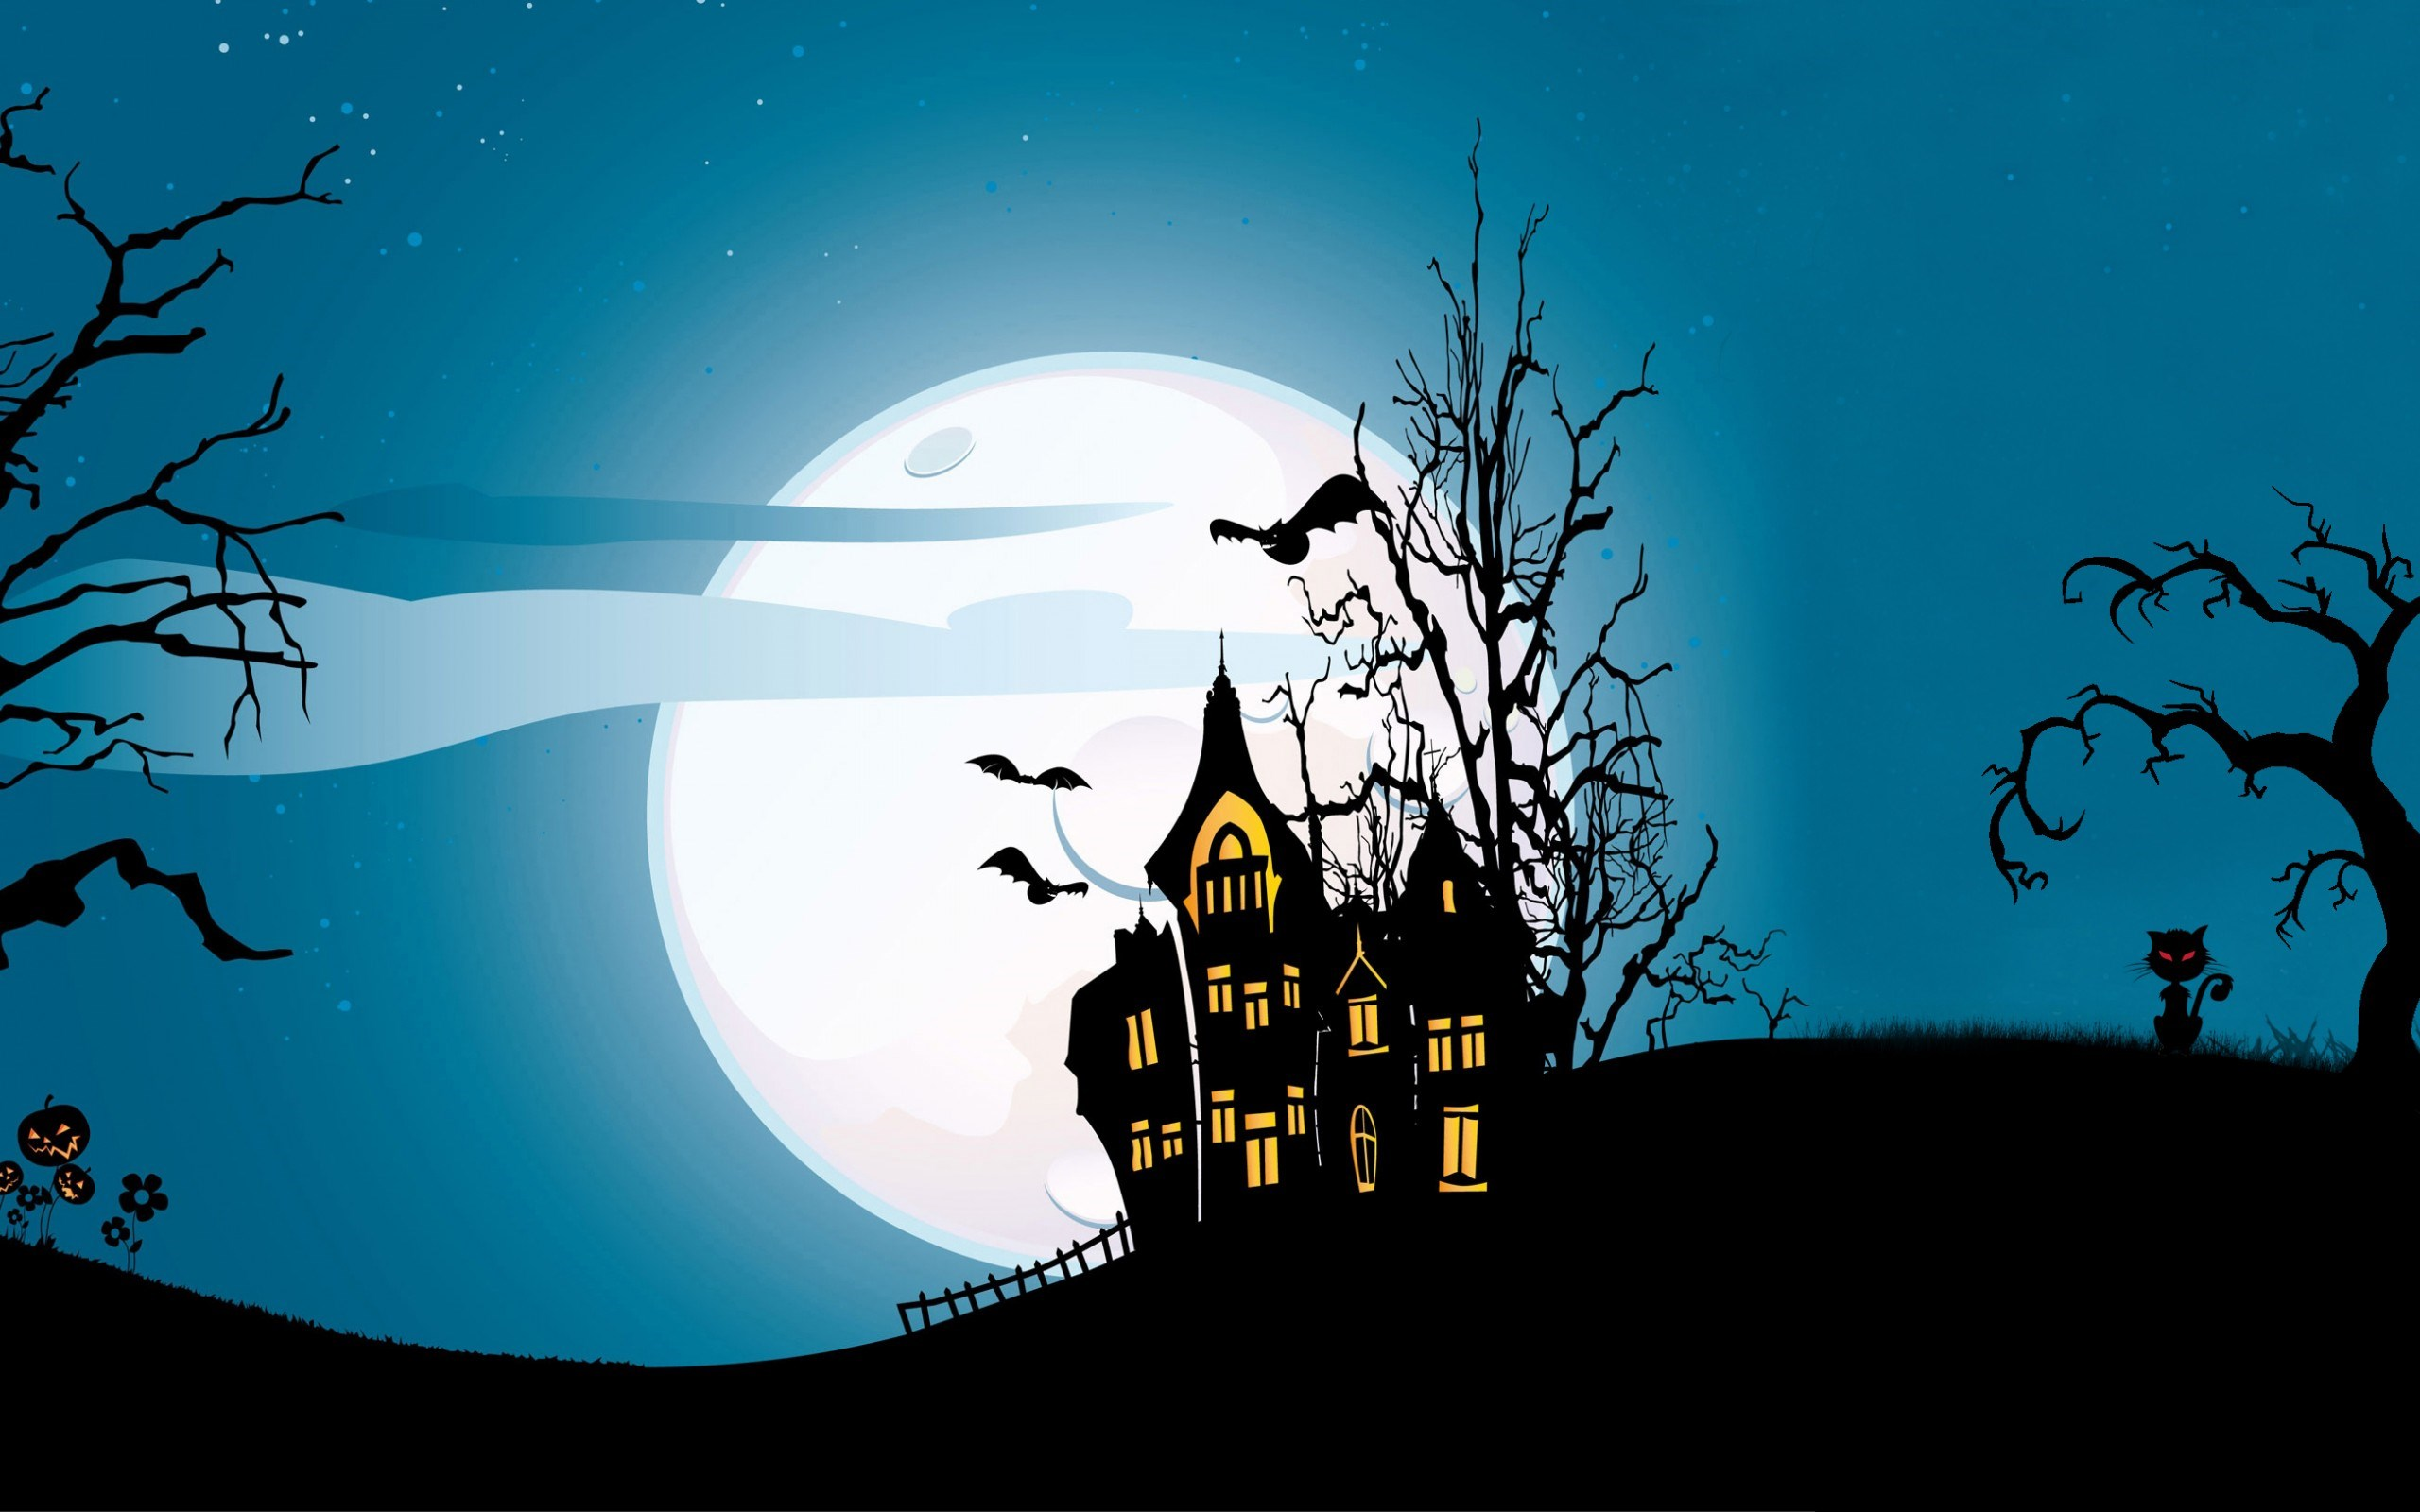 Holiday Halloween Scary Castle Creepy Full Moon Bats Pumpkins Cat Midnight